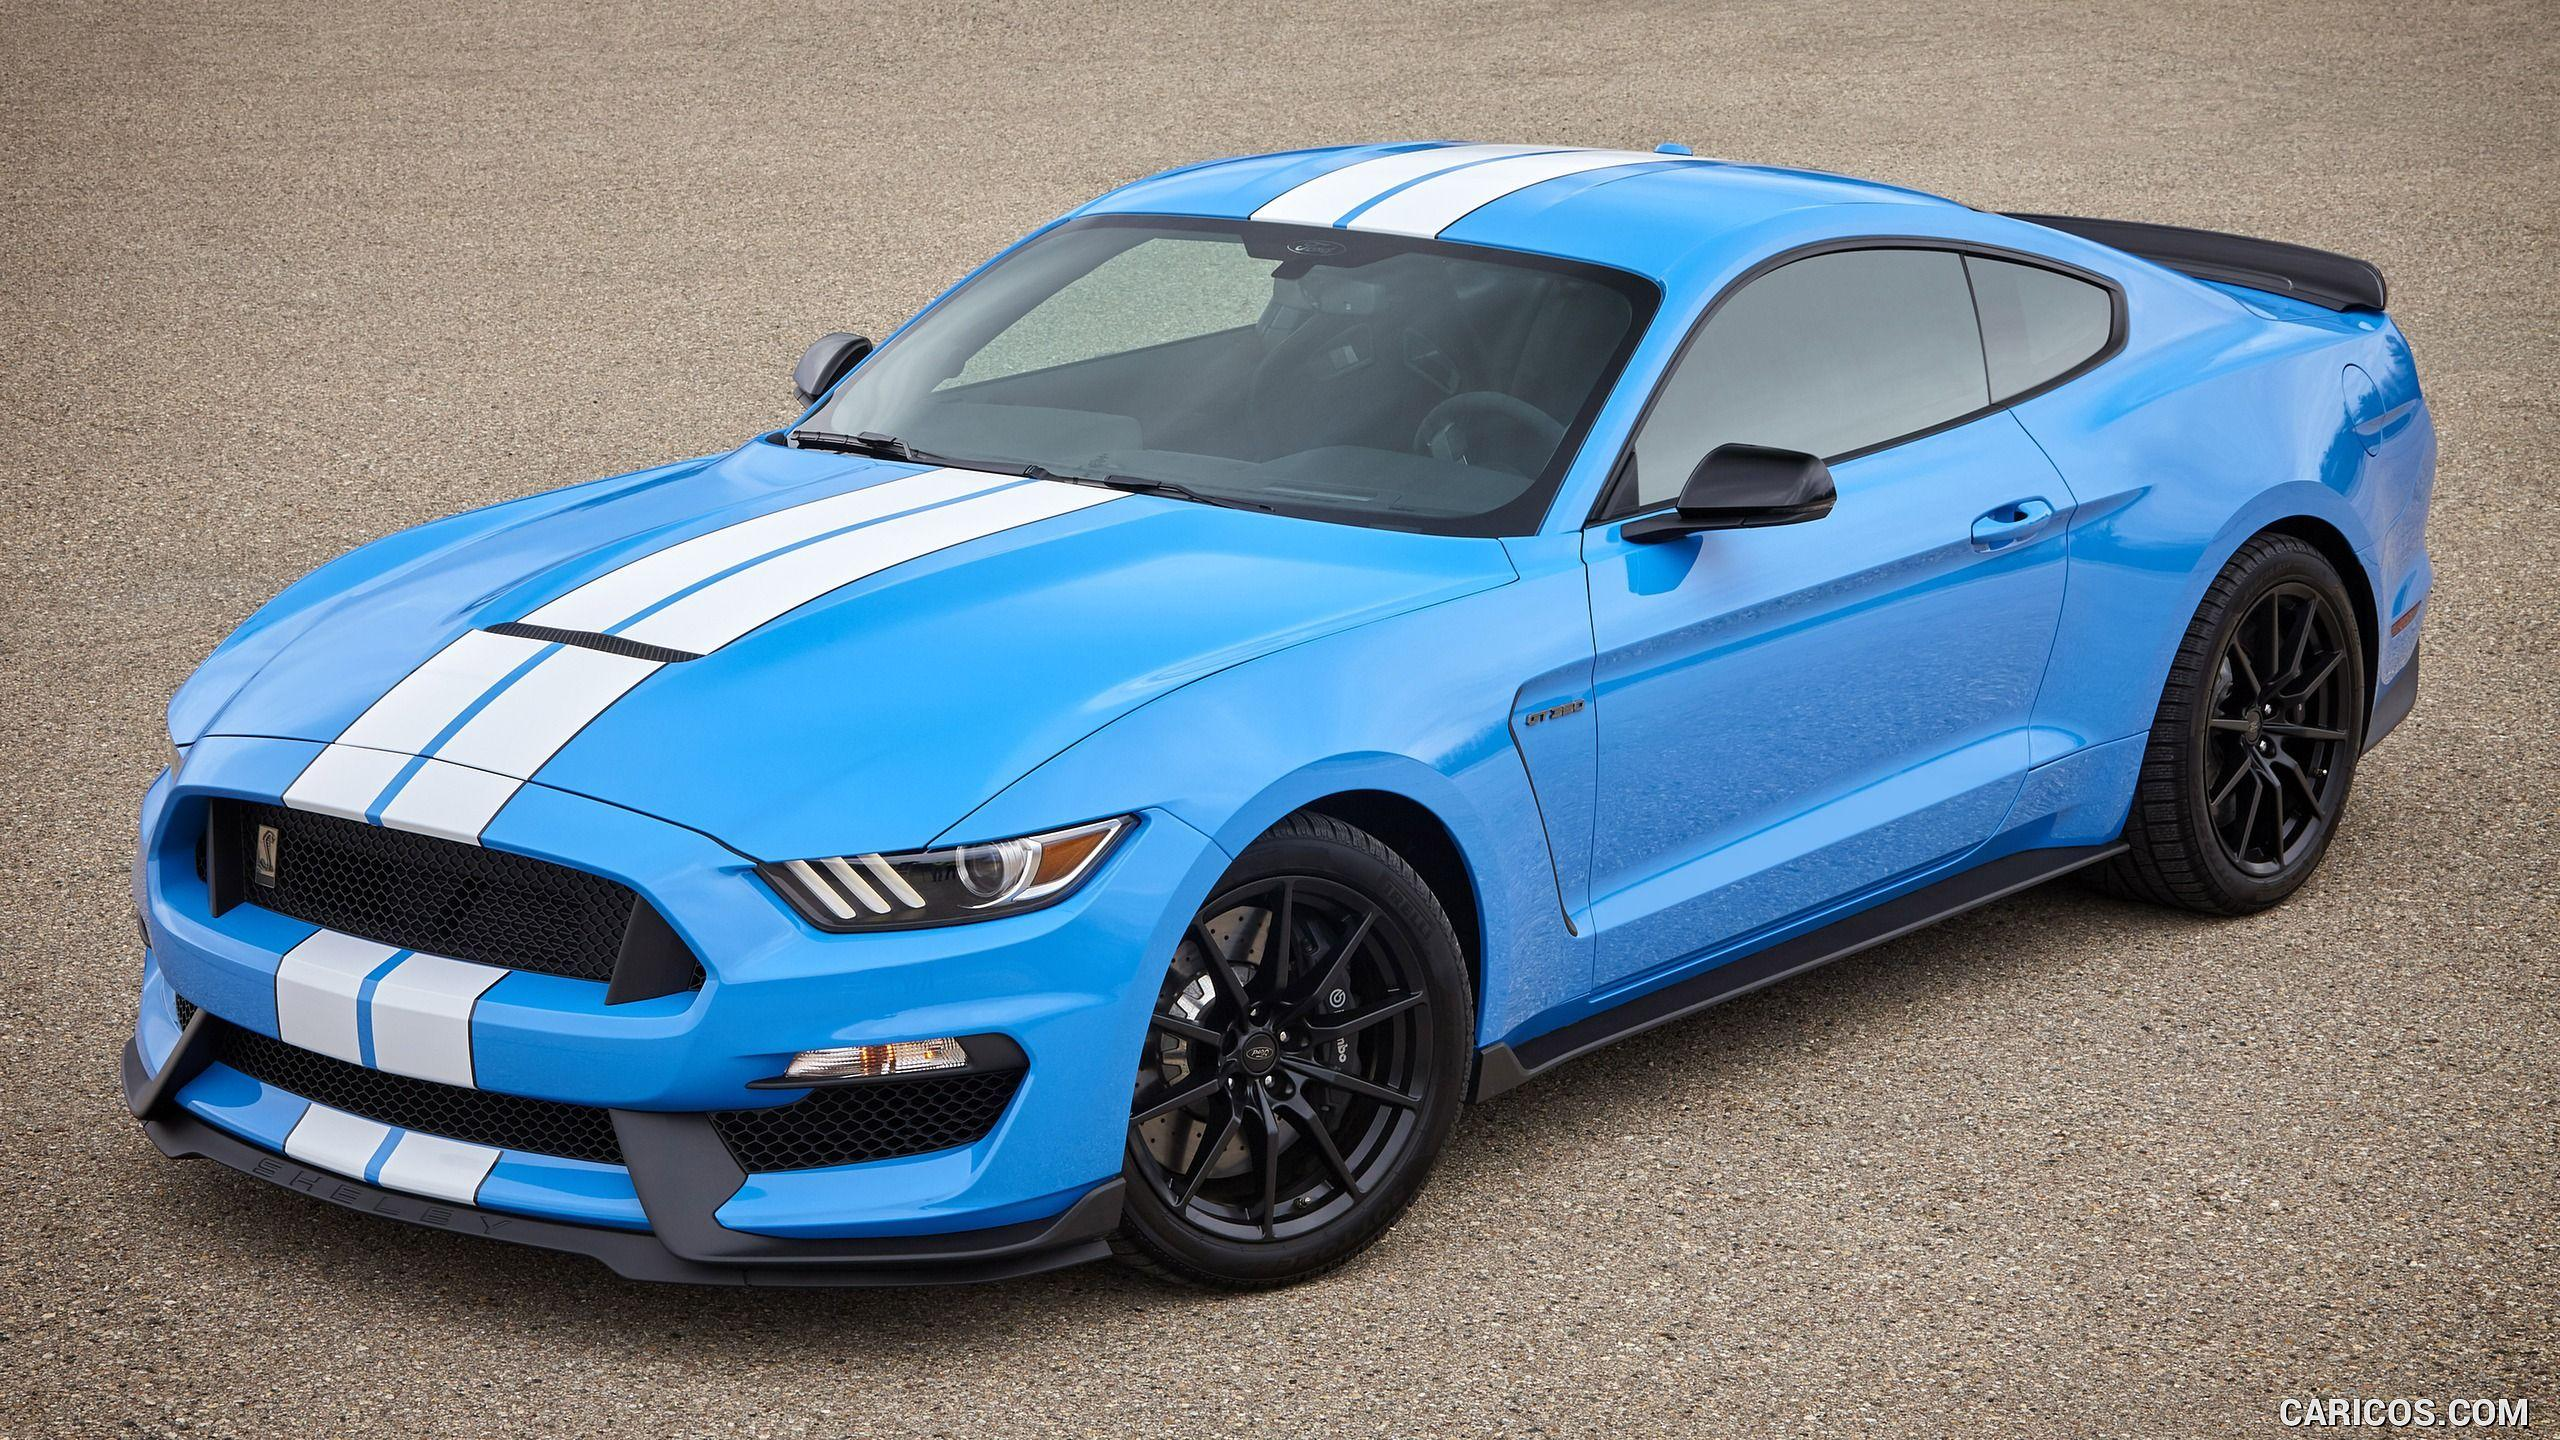 2017 Ford Mustang Shelby GT350 and GT350R Wallpapers